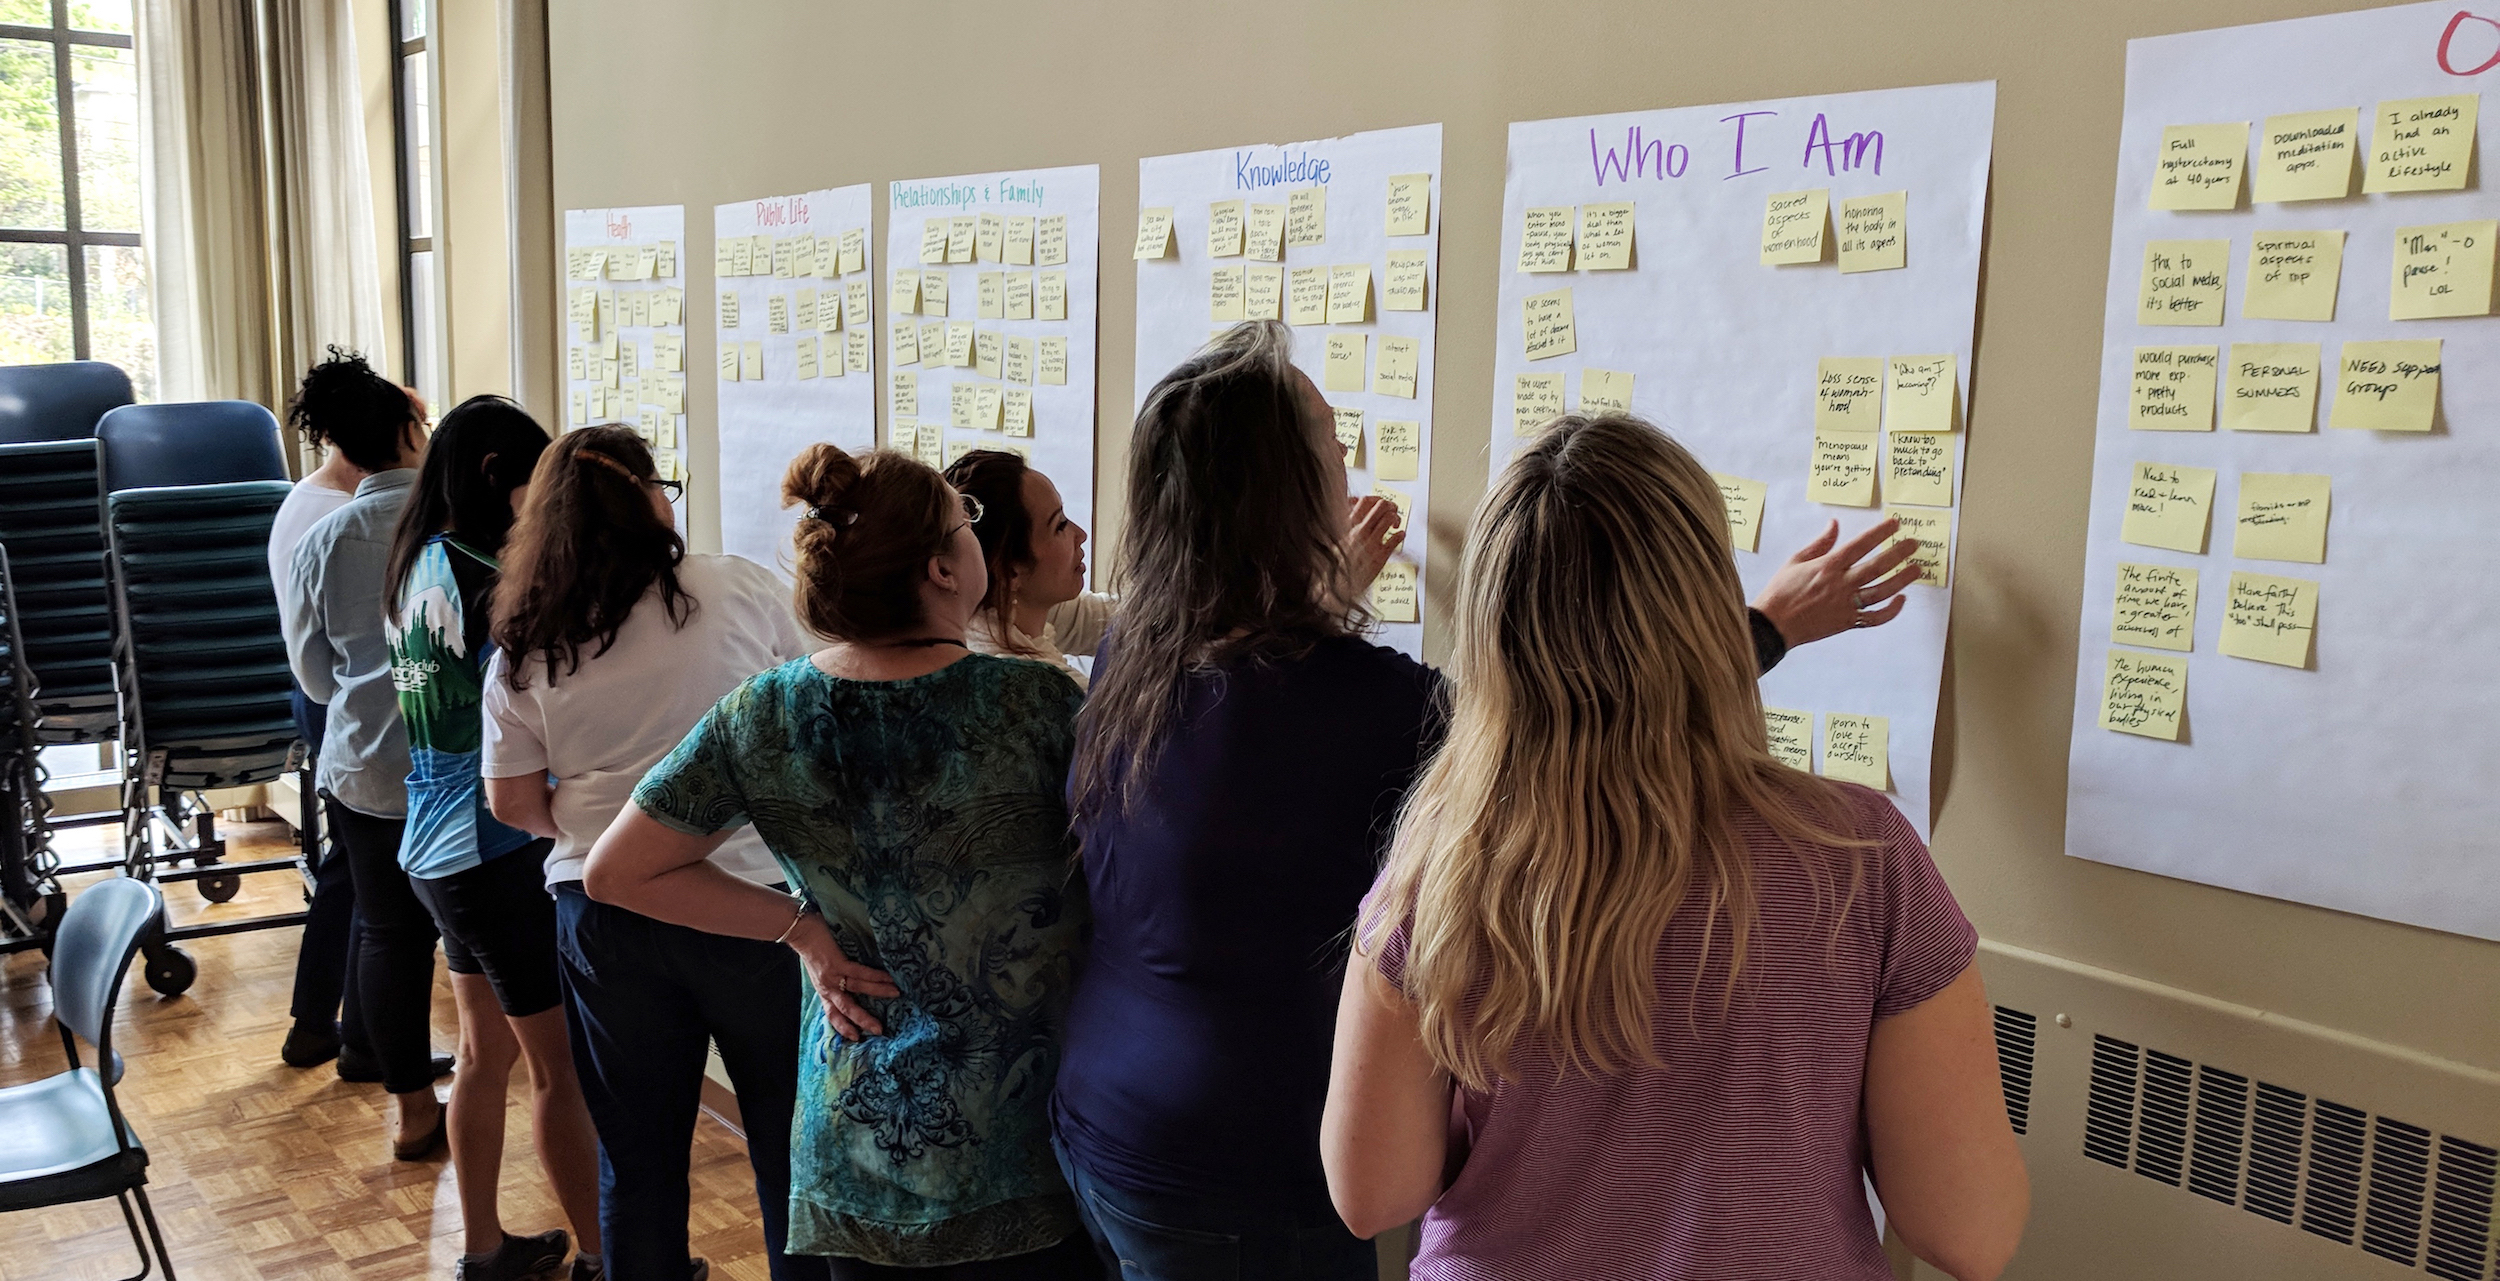 Participants grouping thoughts in an affinity diagram activity.